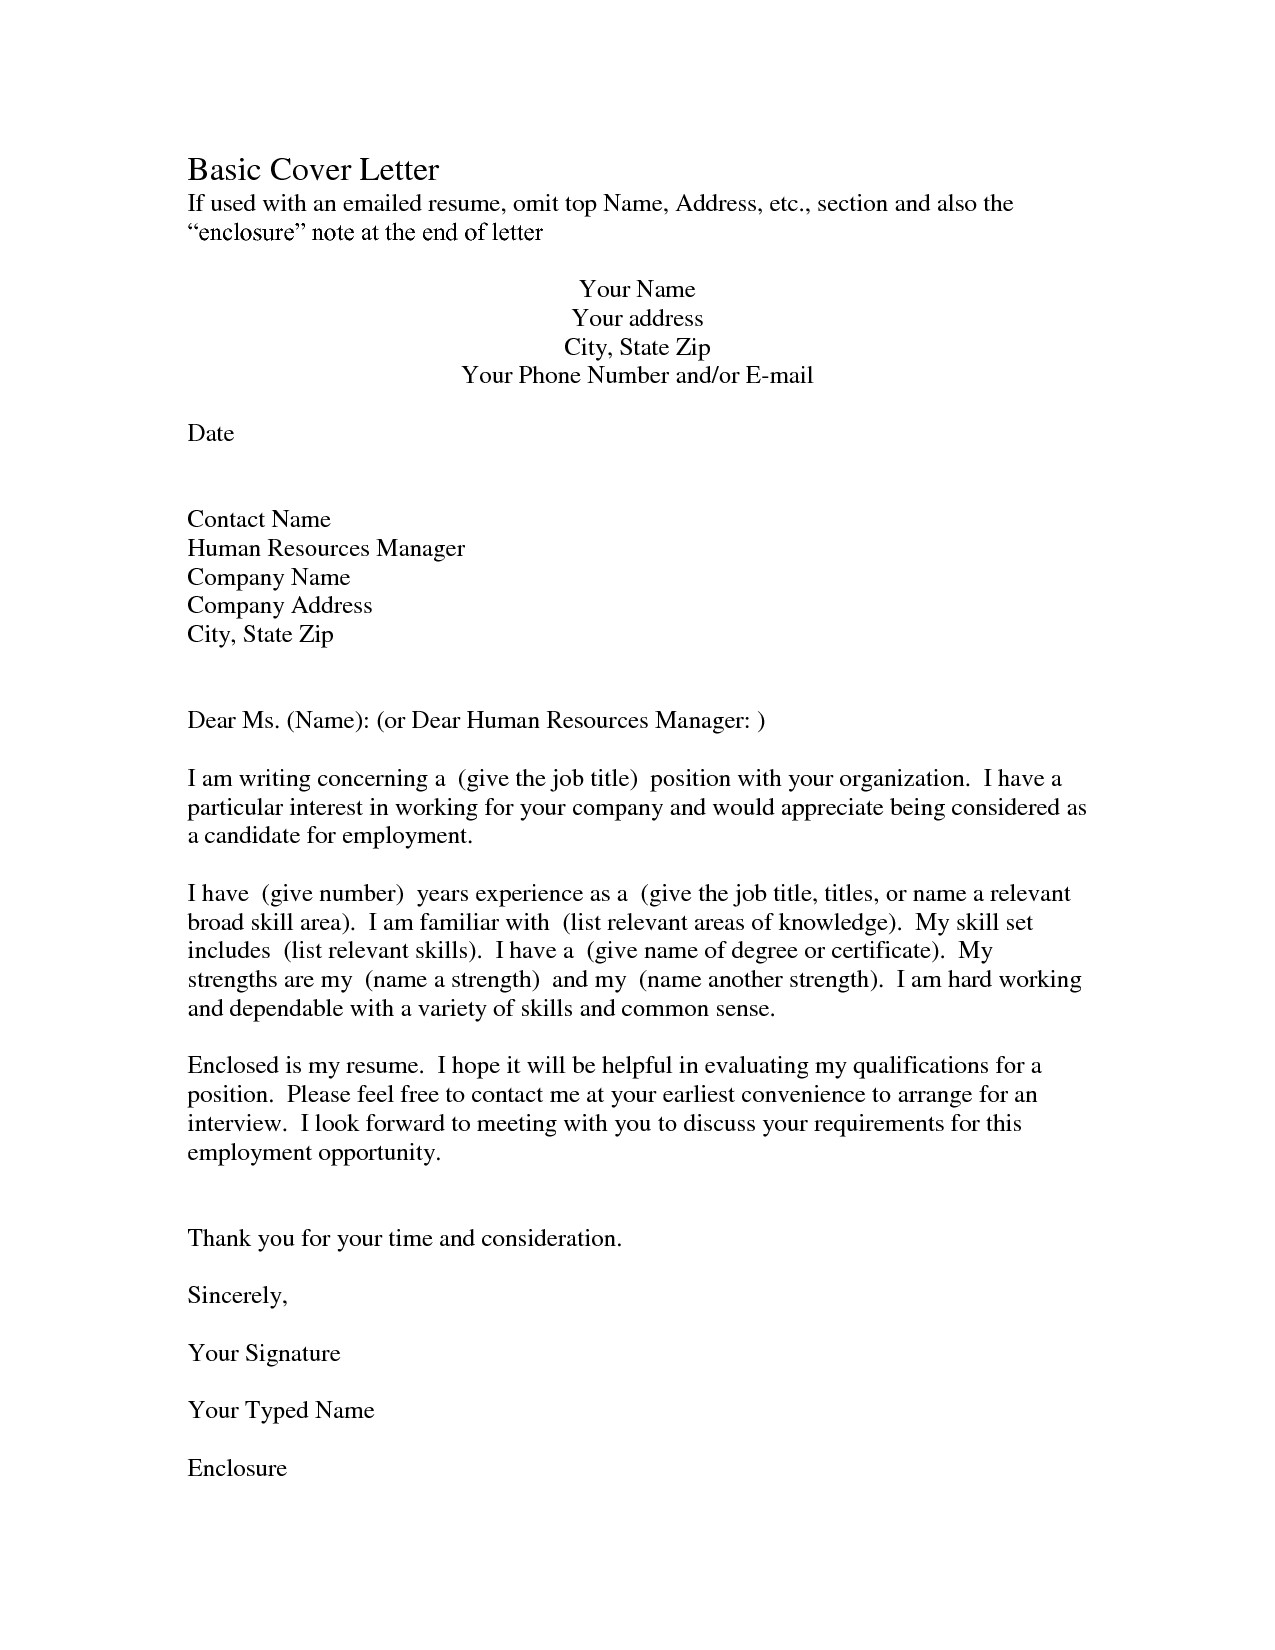 Letter Of Introduction Template for Employment - Intro Letter Acurnamedia